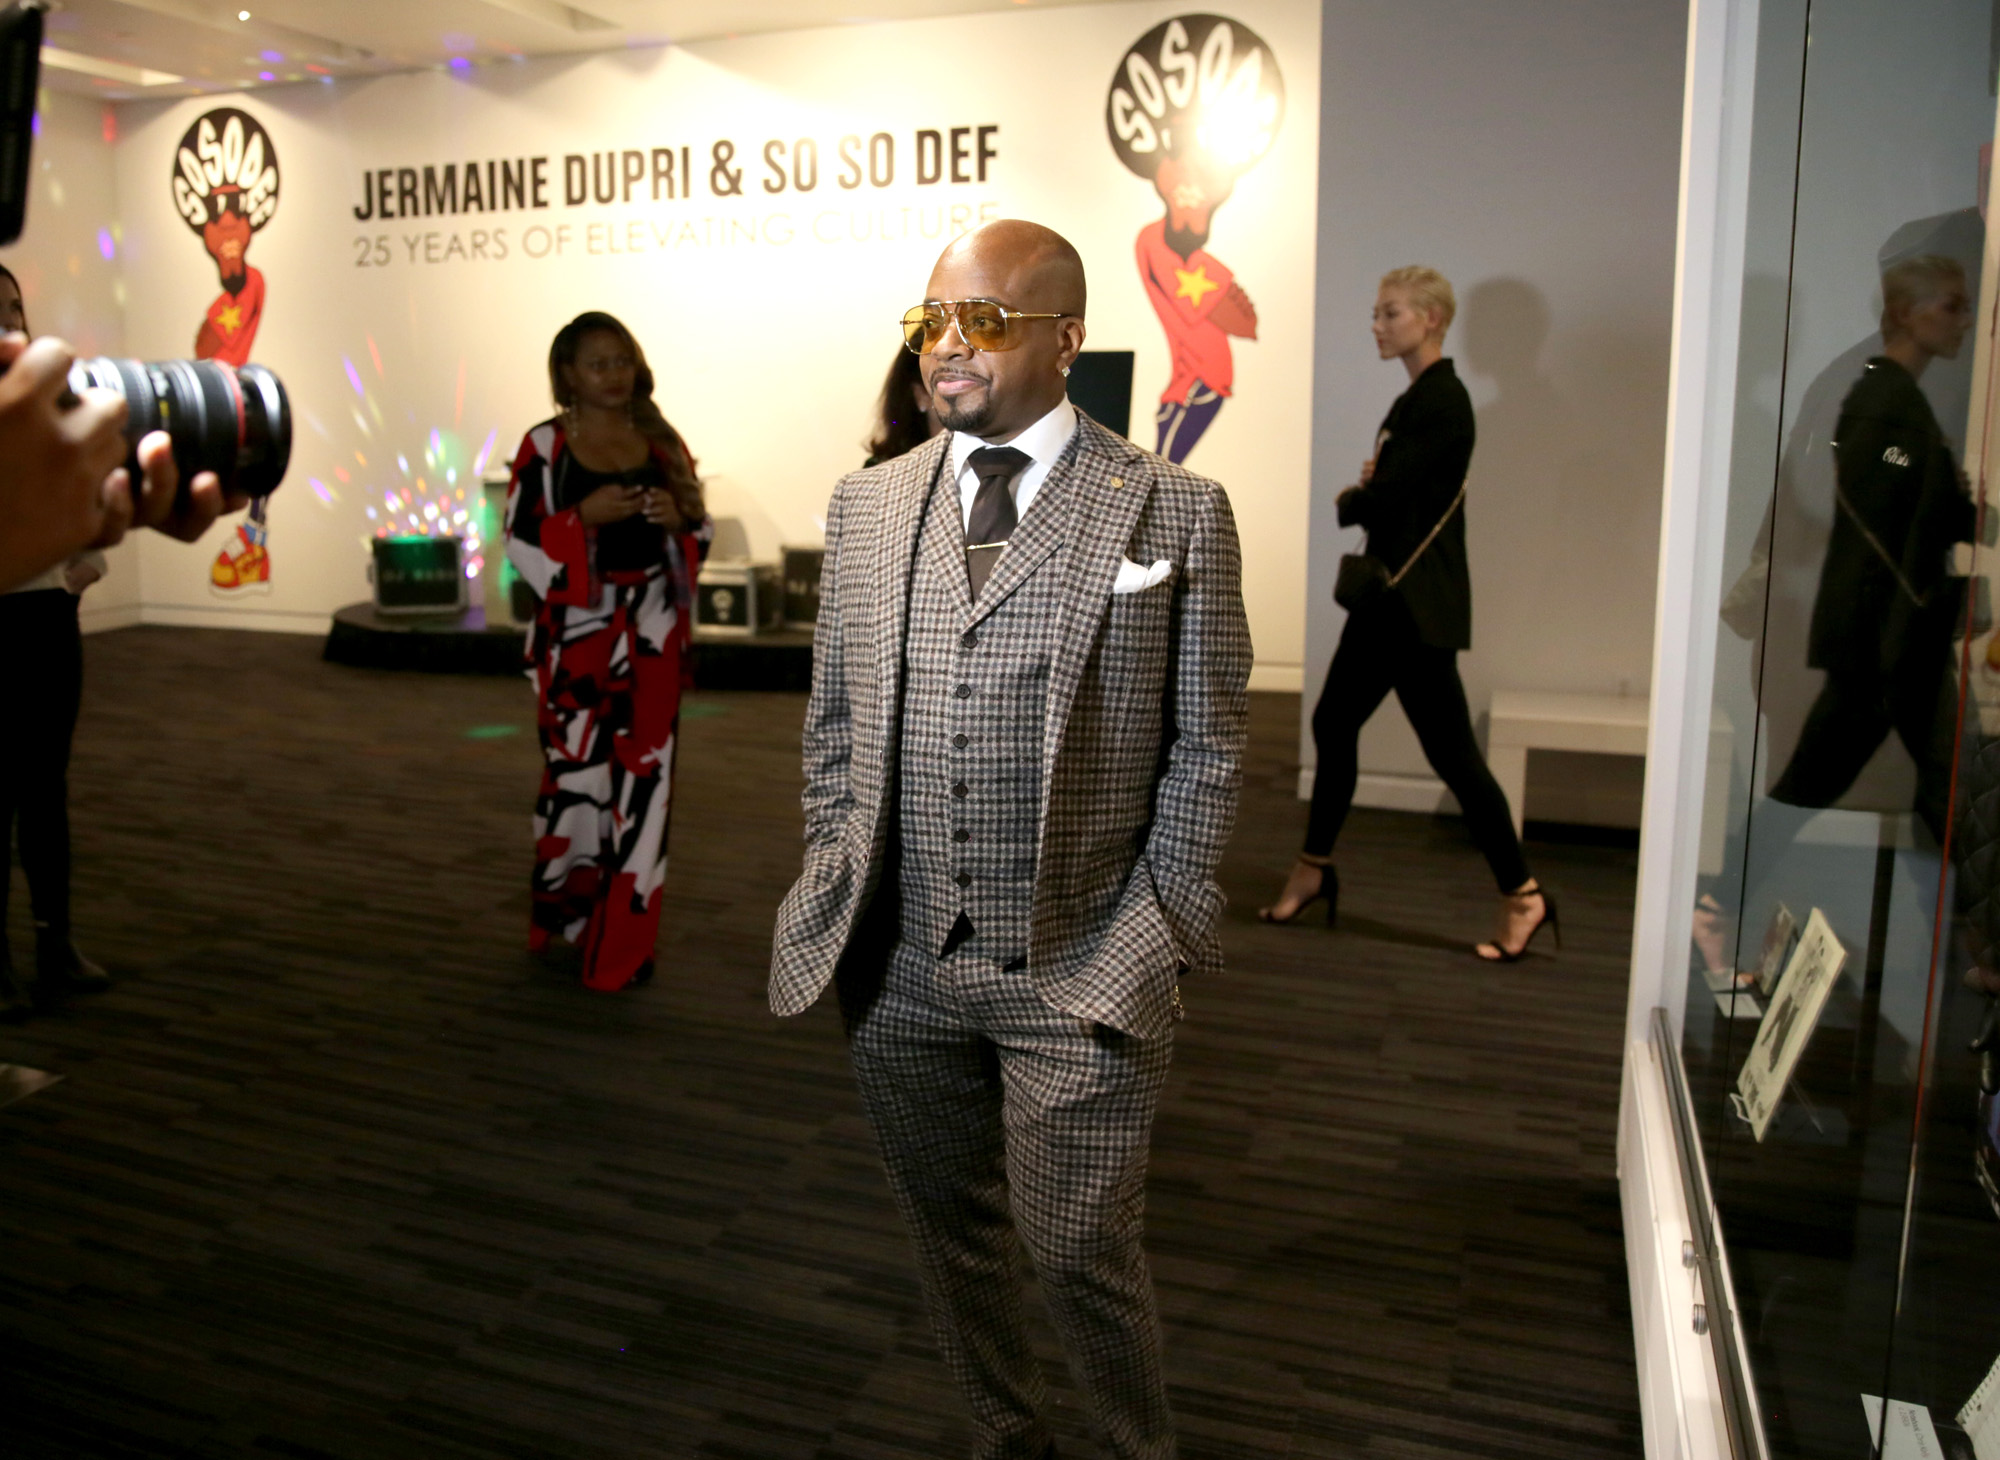 A Conversation With Jermaine Dupri & Friends